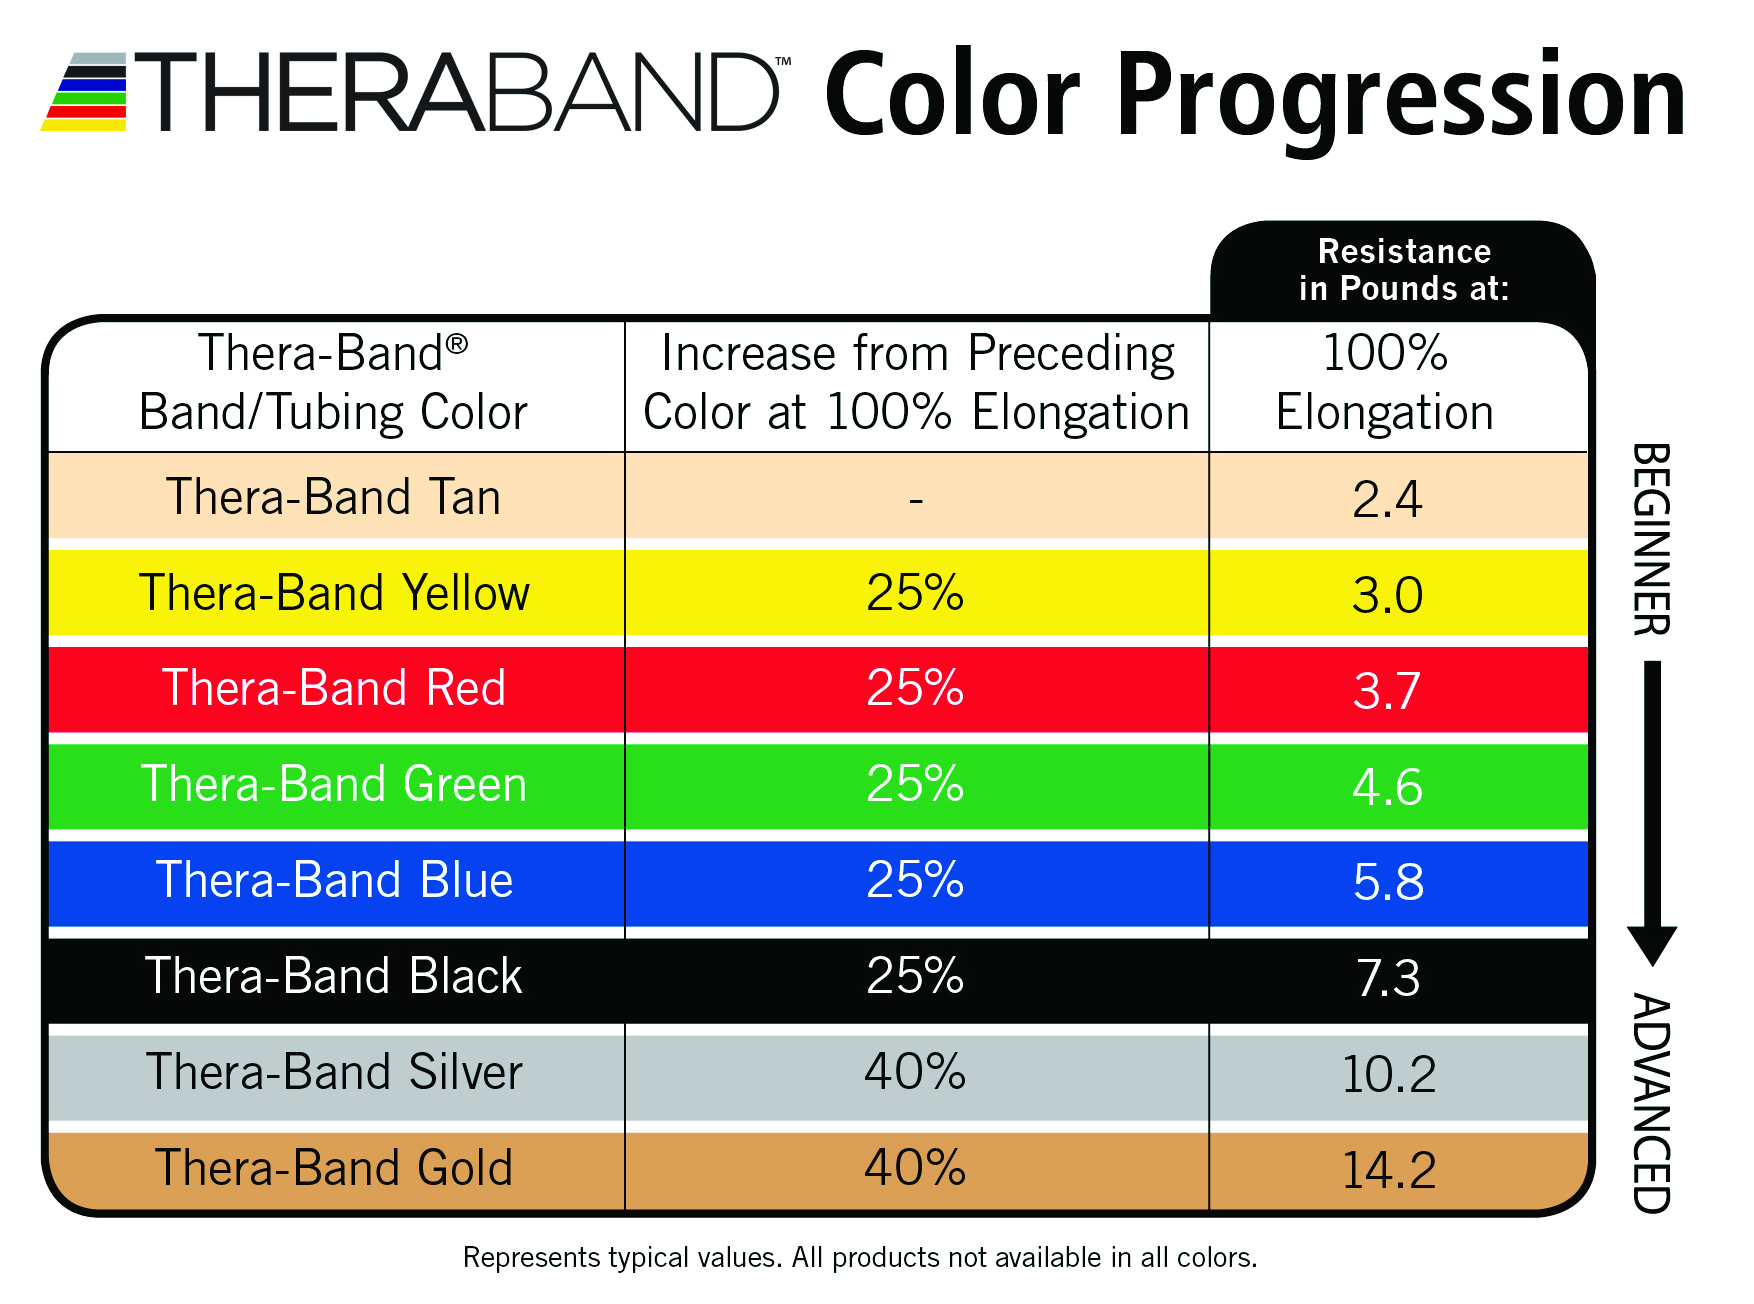 TheraBand Resistance Progression